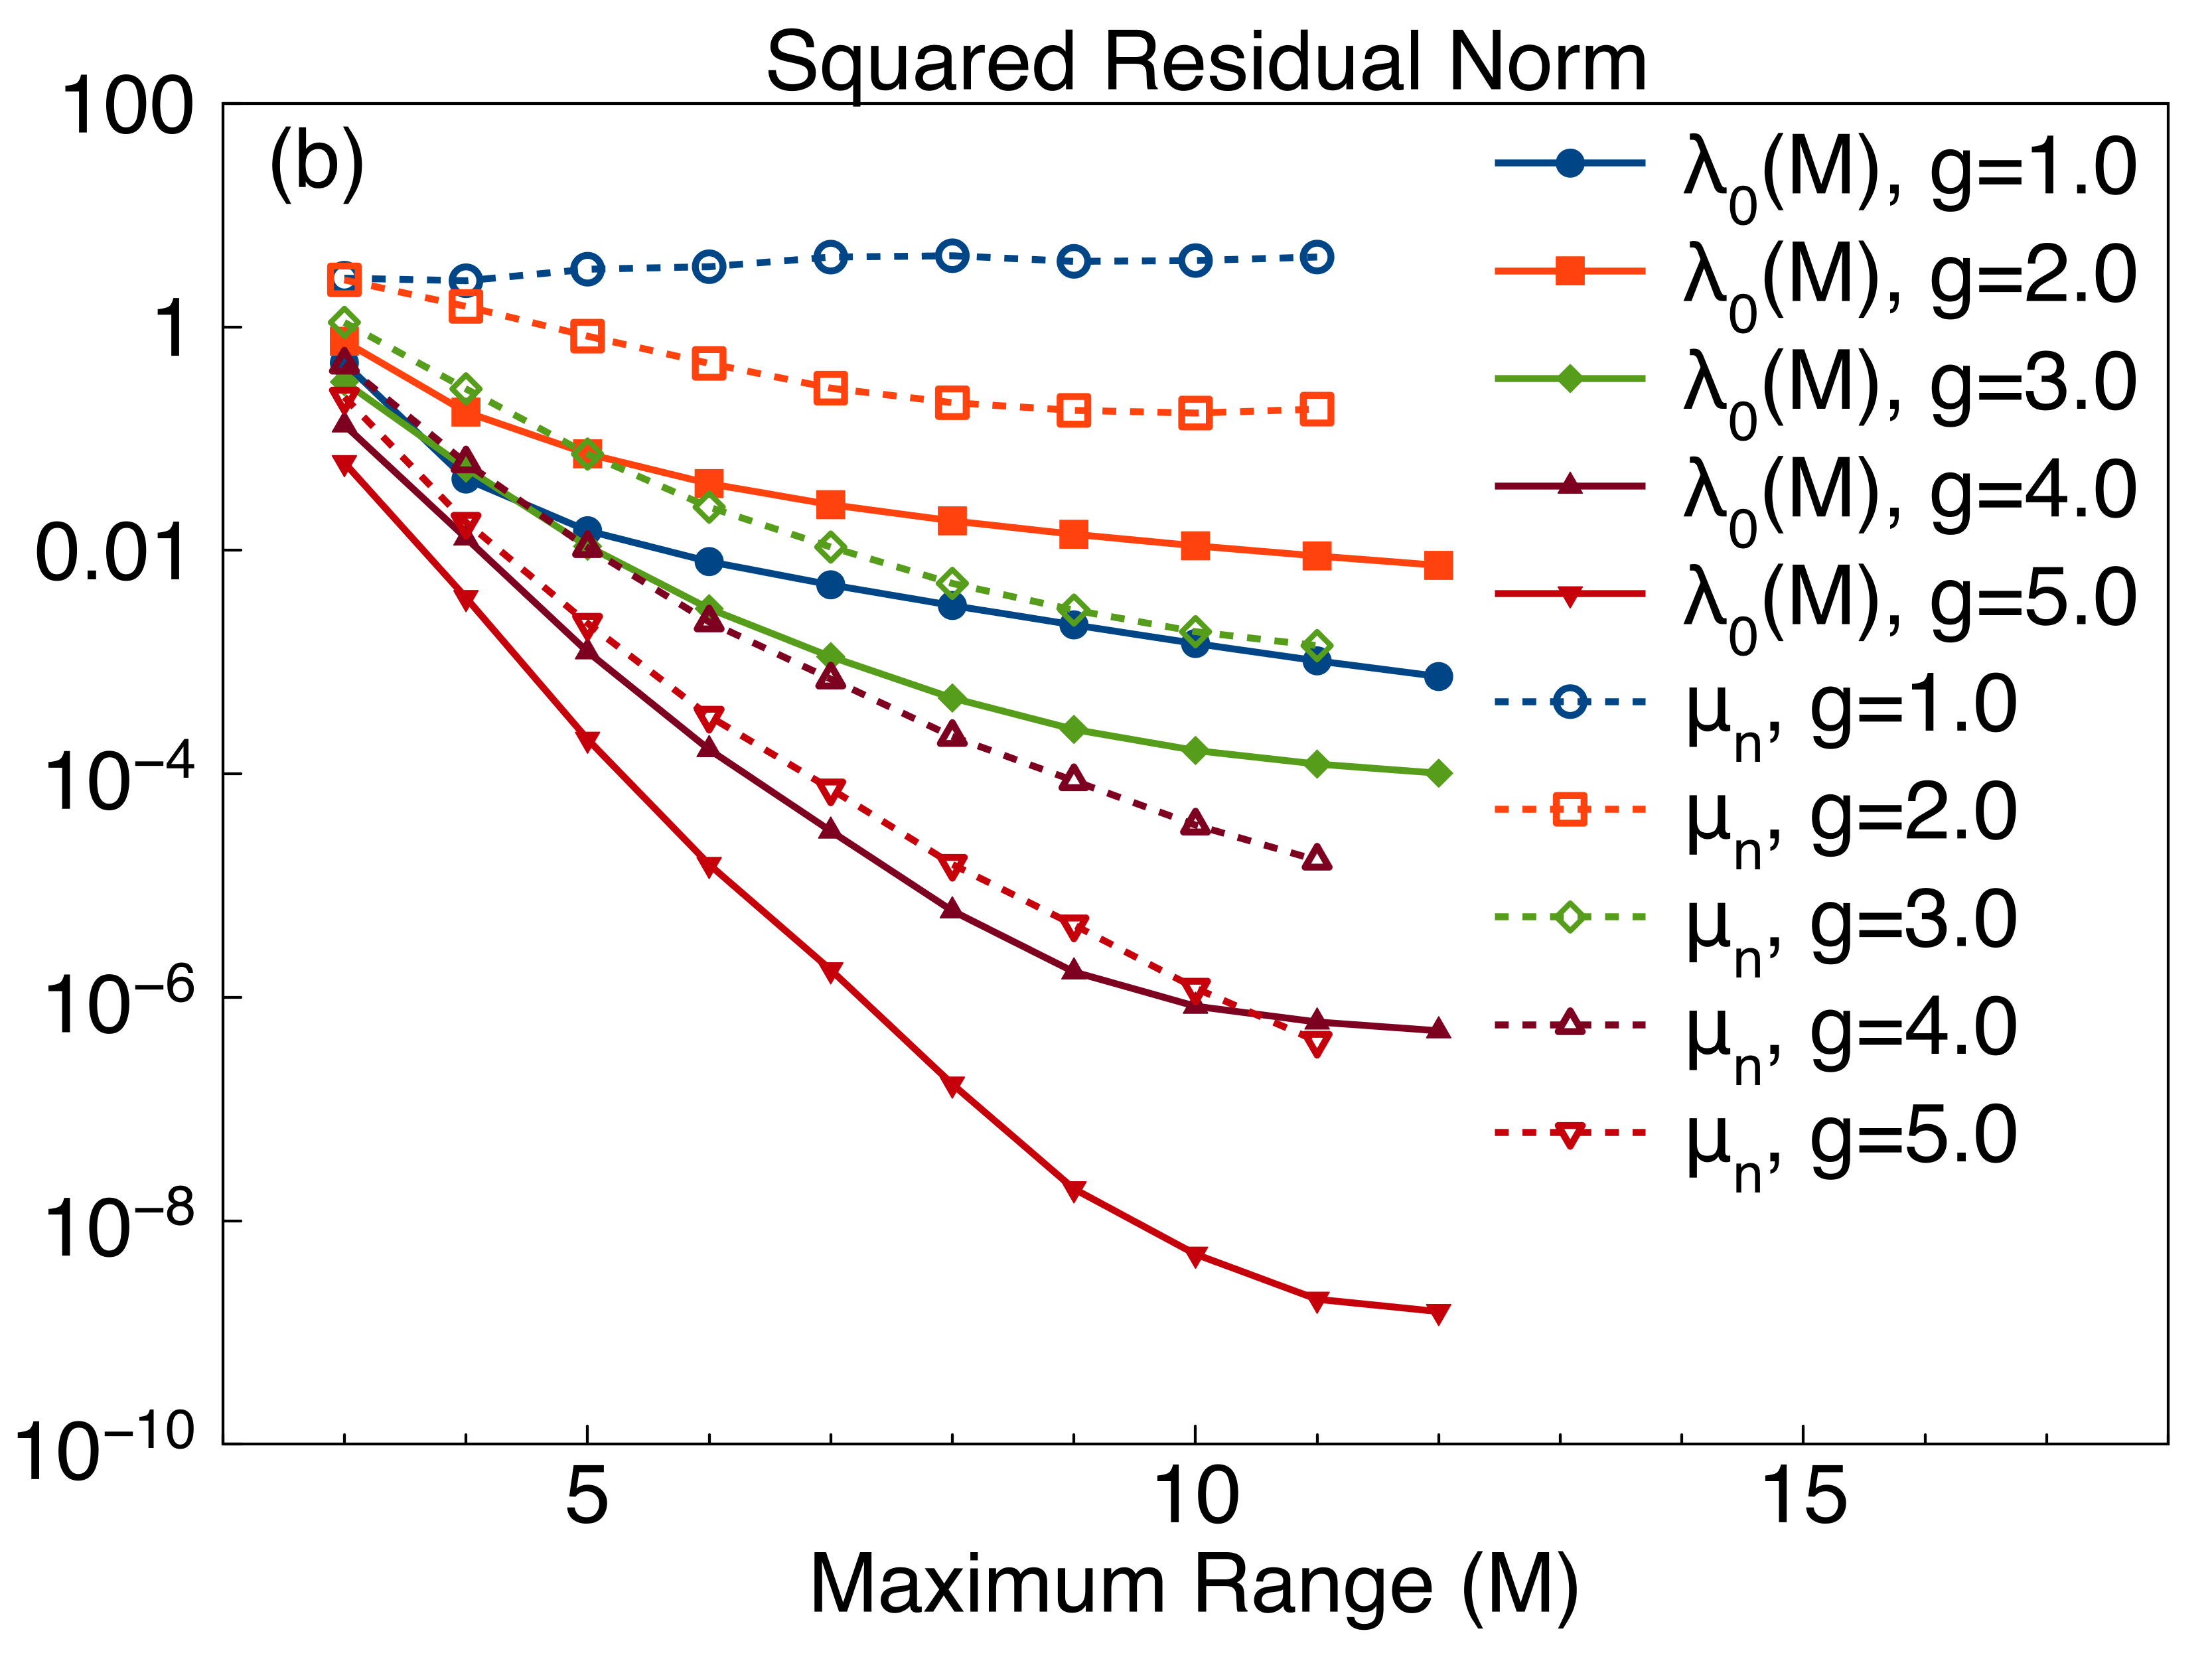 (color online) Behavior of the squared residual norm